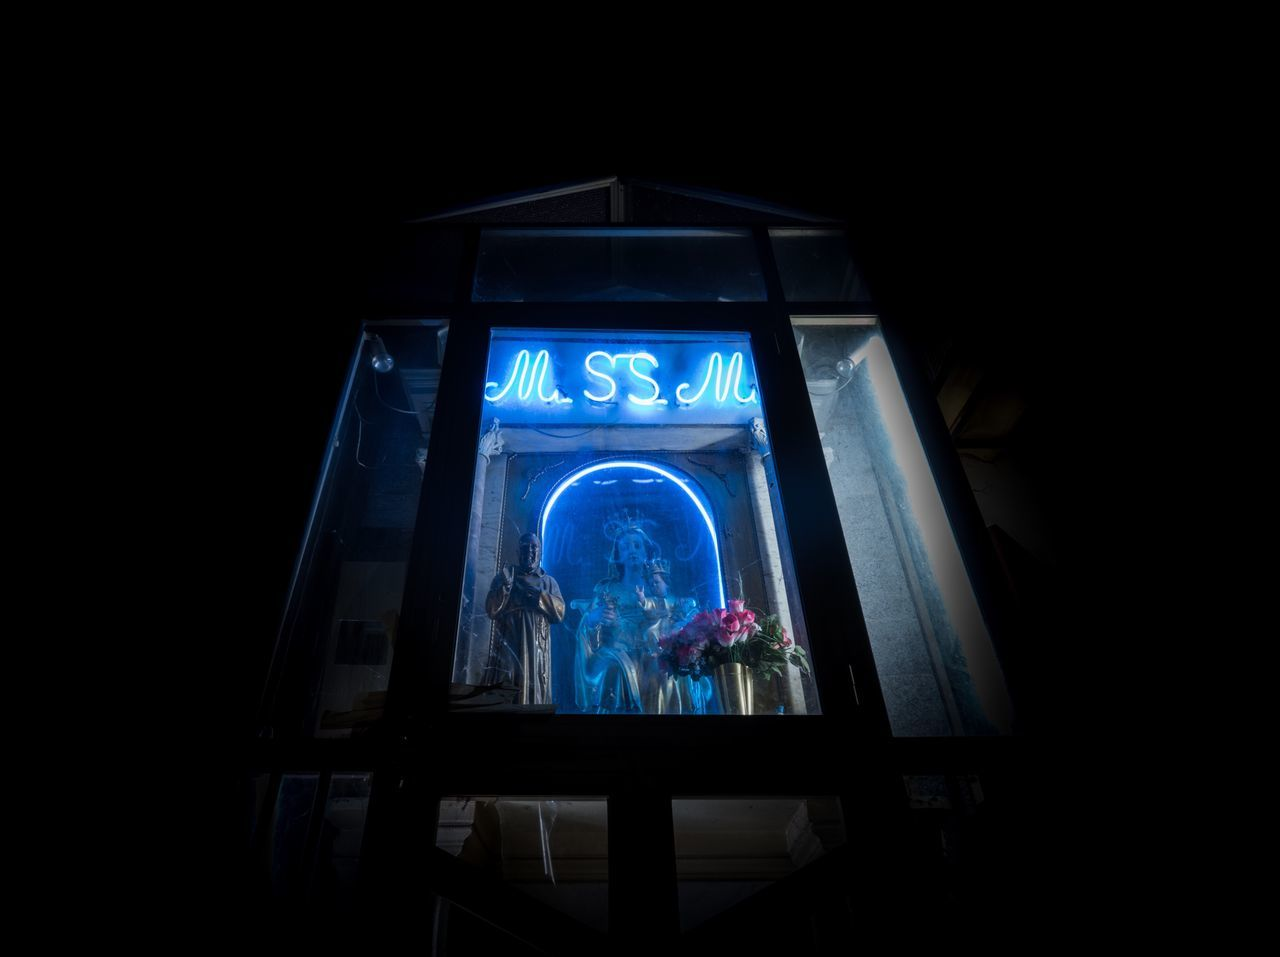 I believe in Neon. Window Dark Night Maria Religion Religious  Neon Lights Neon Naples Napoli Travel Destinations Illuminated Blue You Want It Darker Italia Italy Bella Italia Italy❤️ City Statue Letters Europe Worship Streetphotography Street Photography